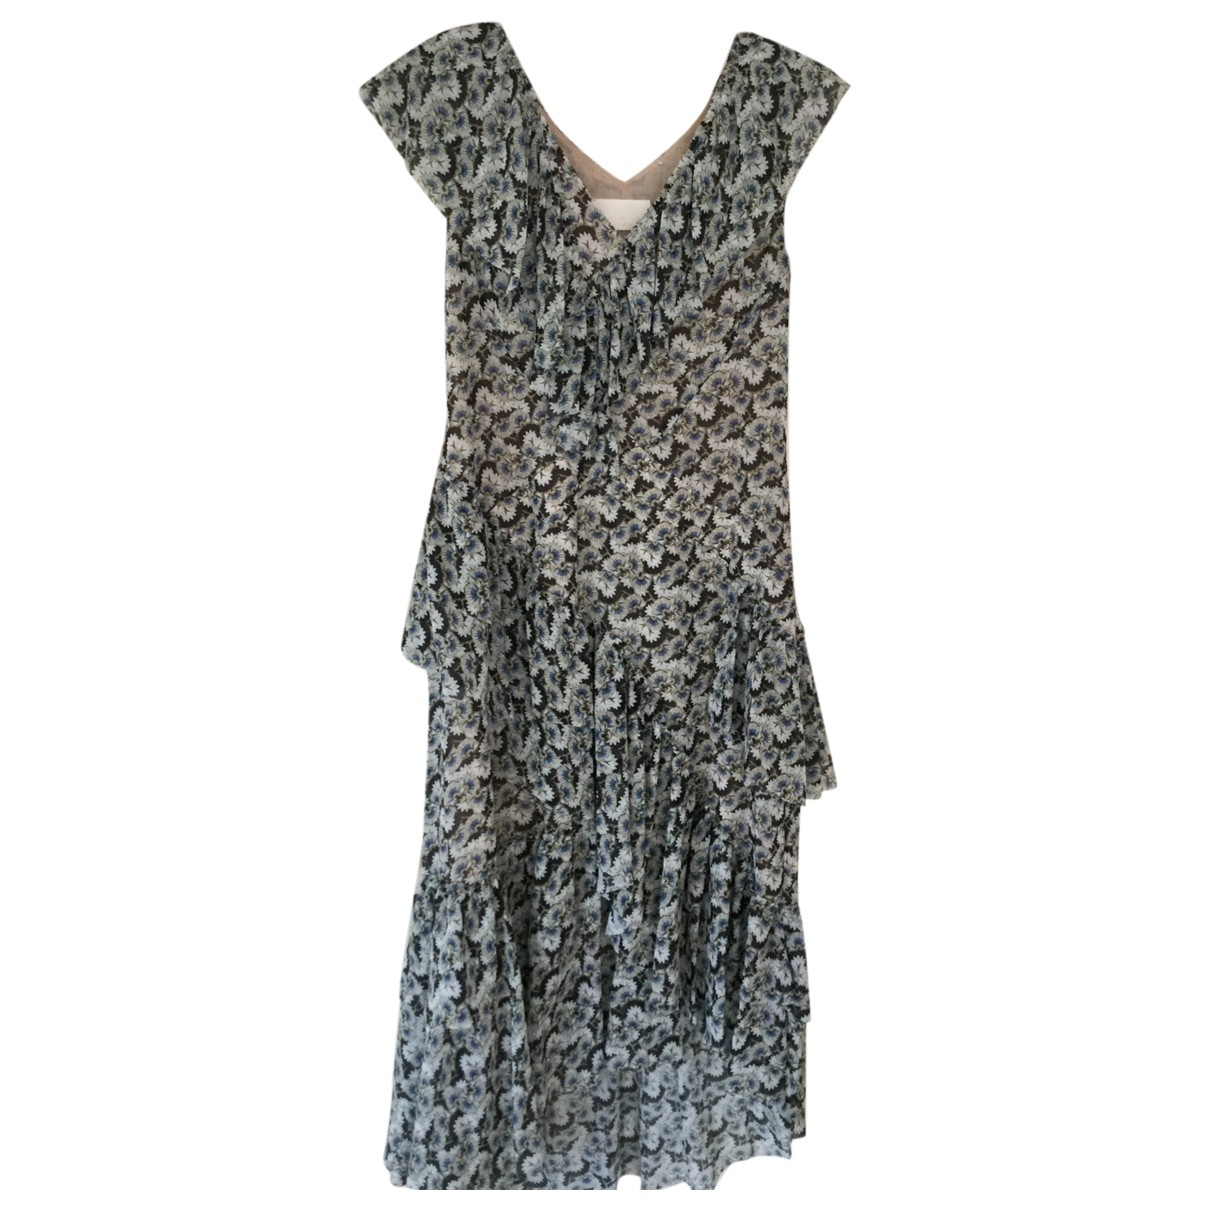 H&m Conscious Exclusive \N Blue dress for Women 42 FR